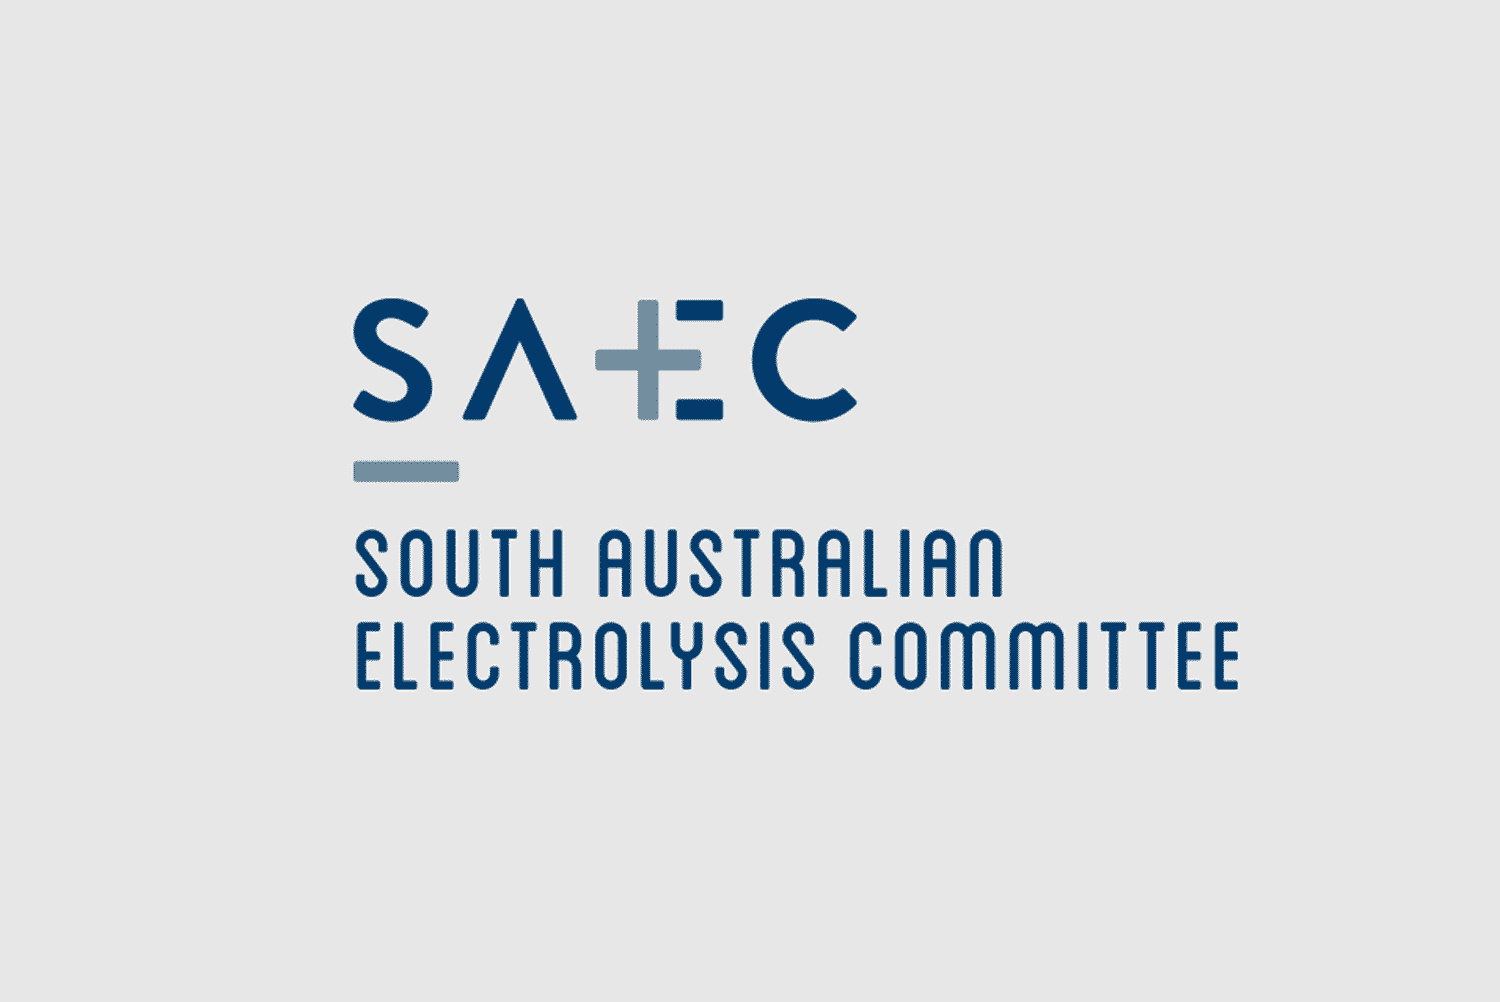 South Australian Electrolysis Committee logo design Adelaide